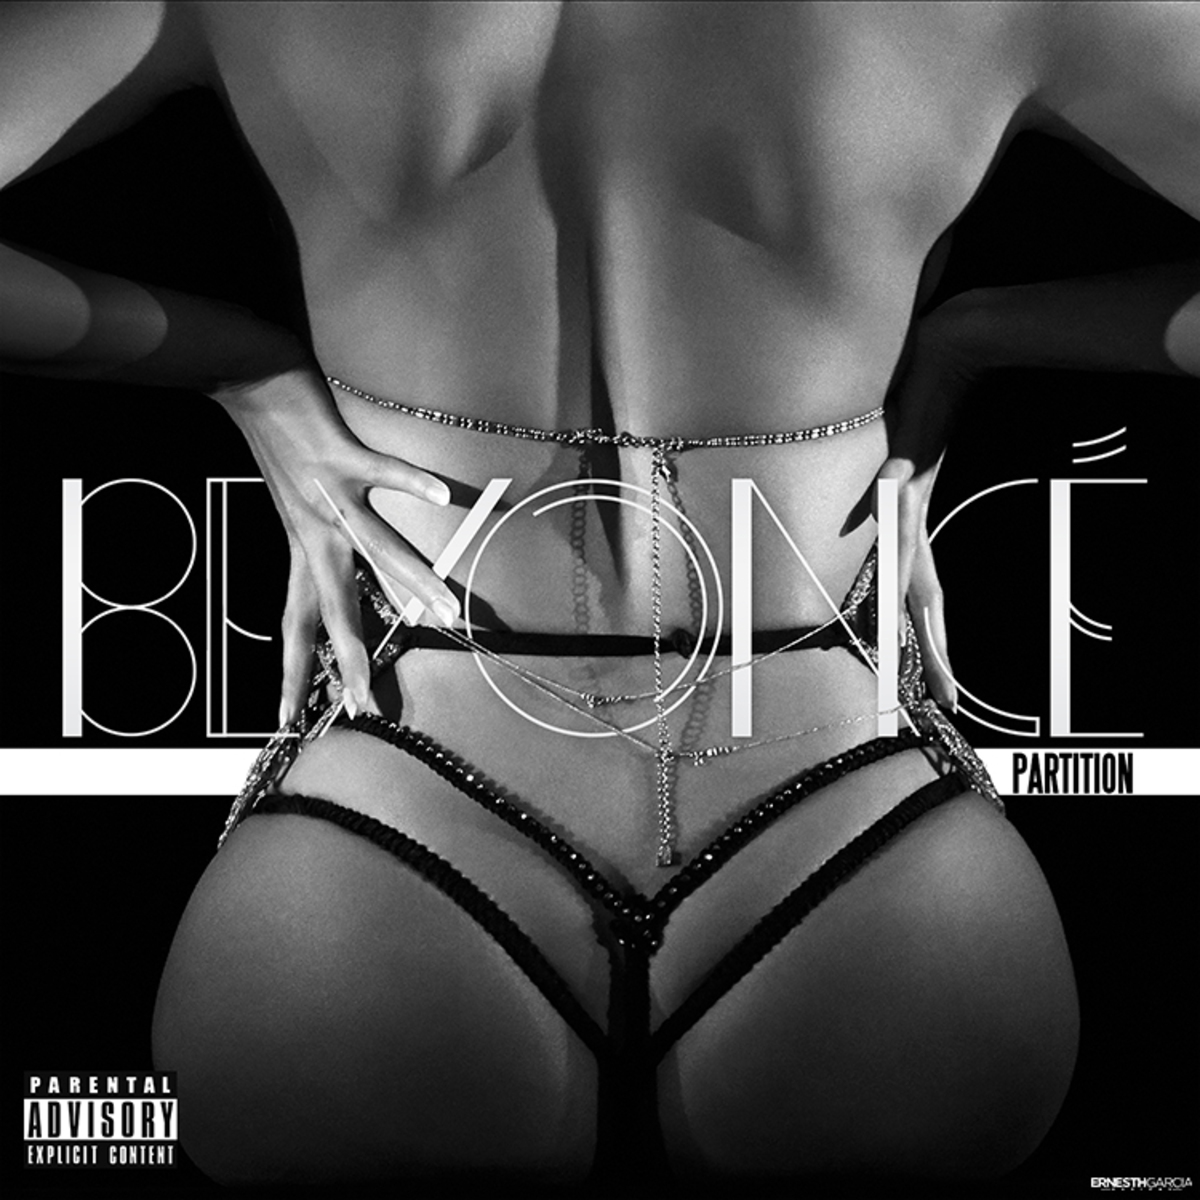 Beyonce partition explicit video 1080p 4